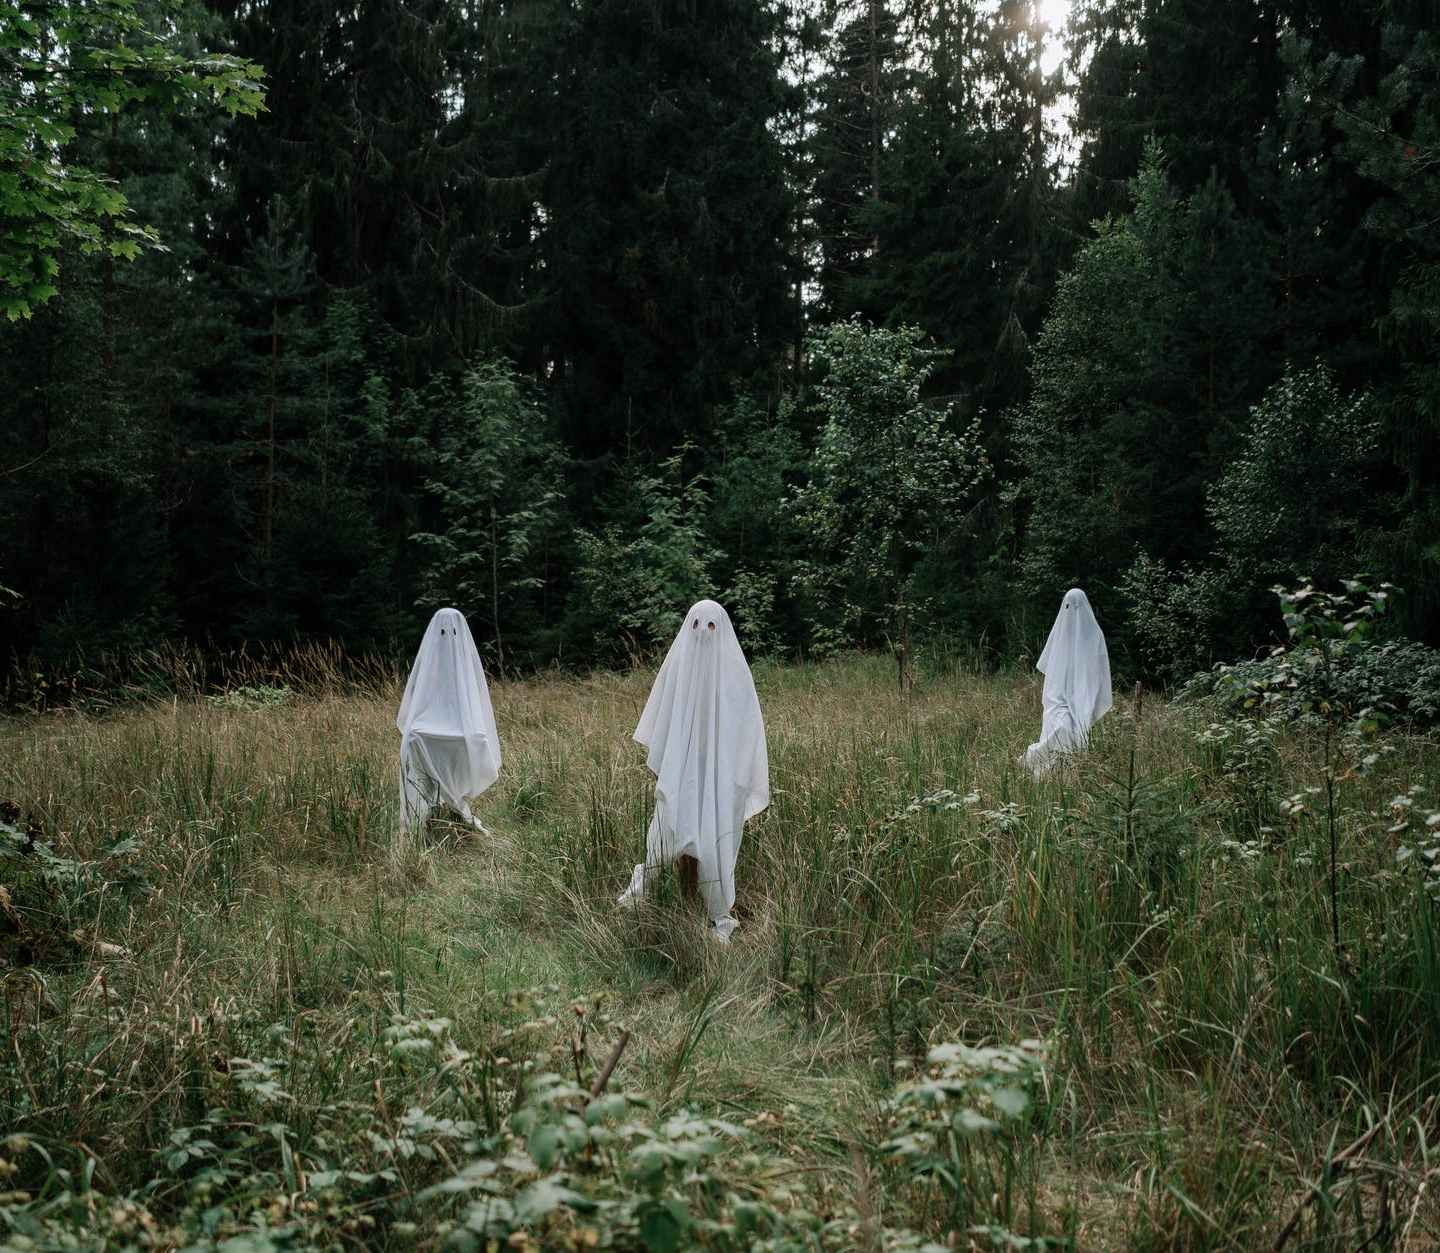 How Ghosts Could Be Real